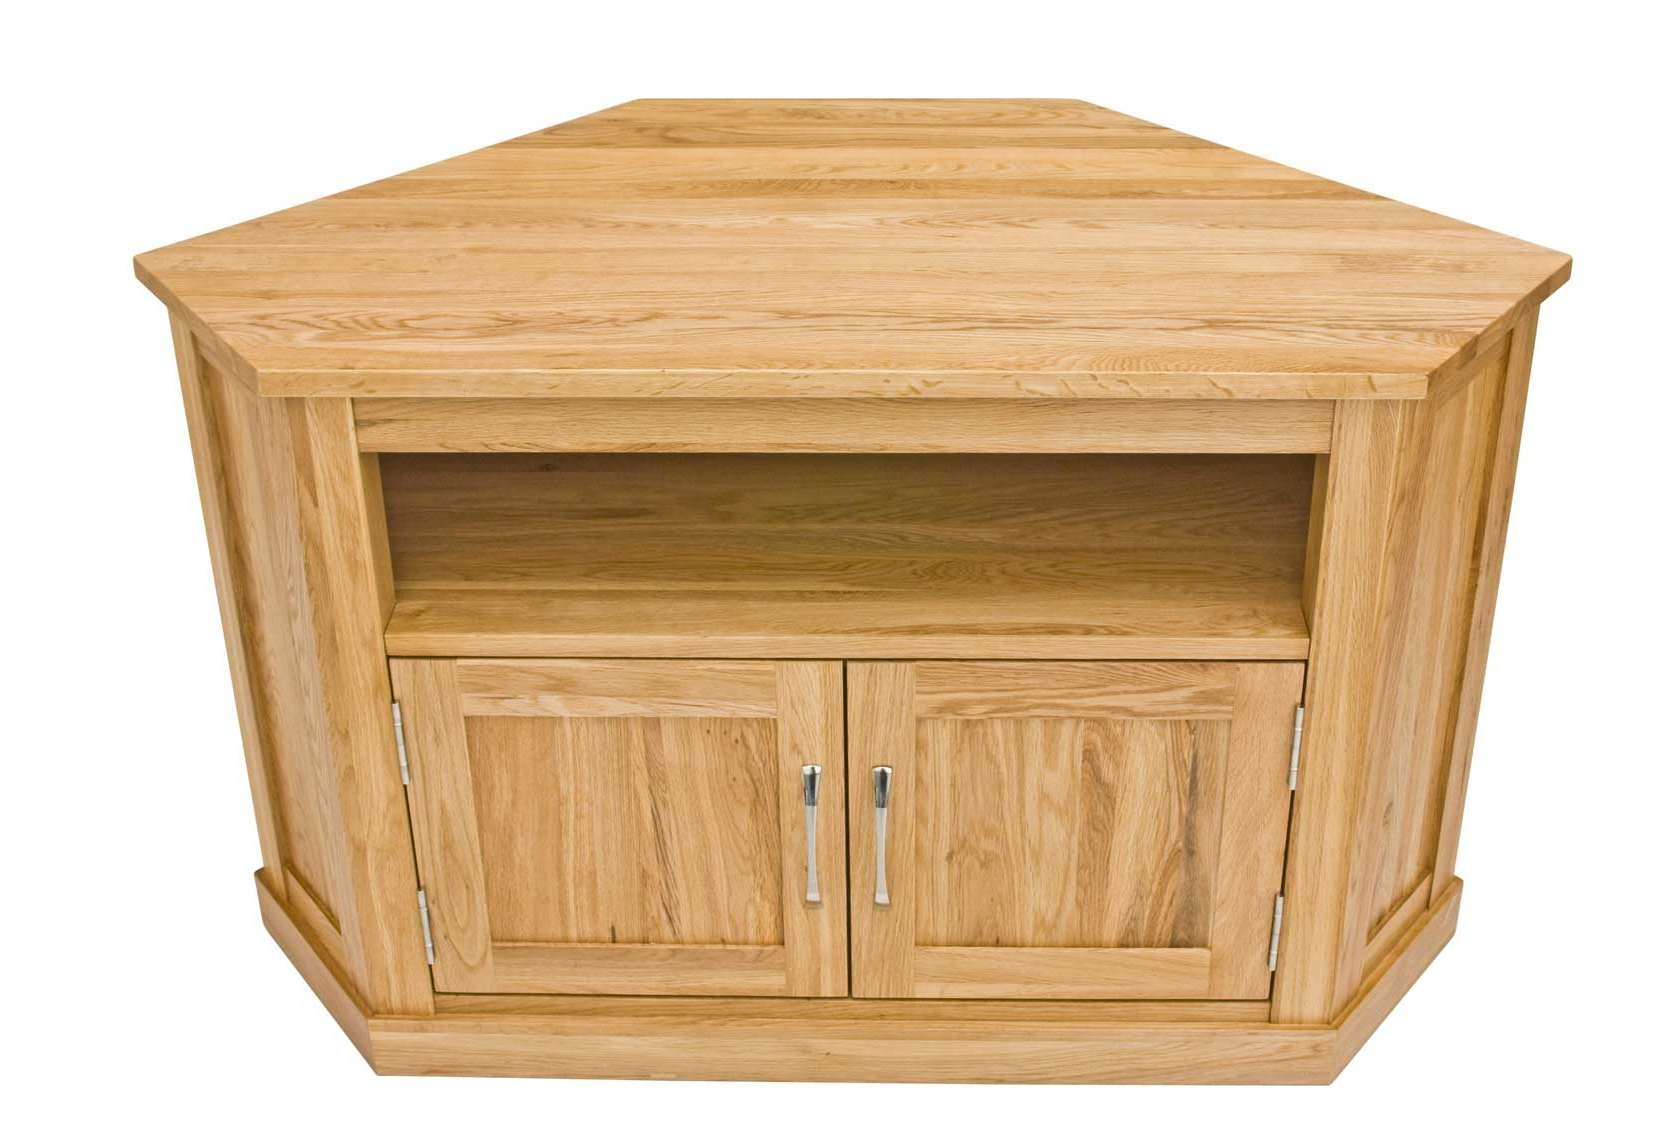 Classic Oak Corner Television Cabinet | Hampshire Furniture Pertaining To Wooden Tv Stands Corner Units (View 5 of 15)